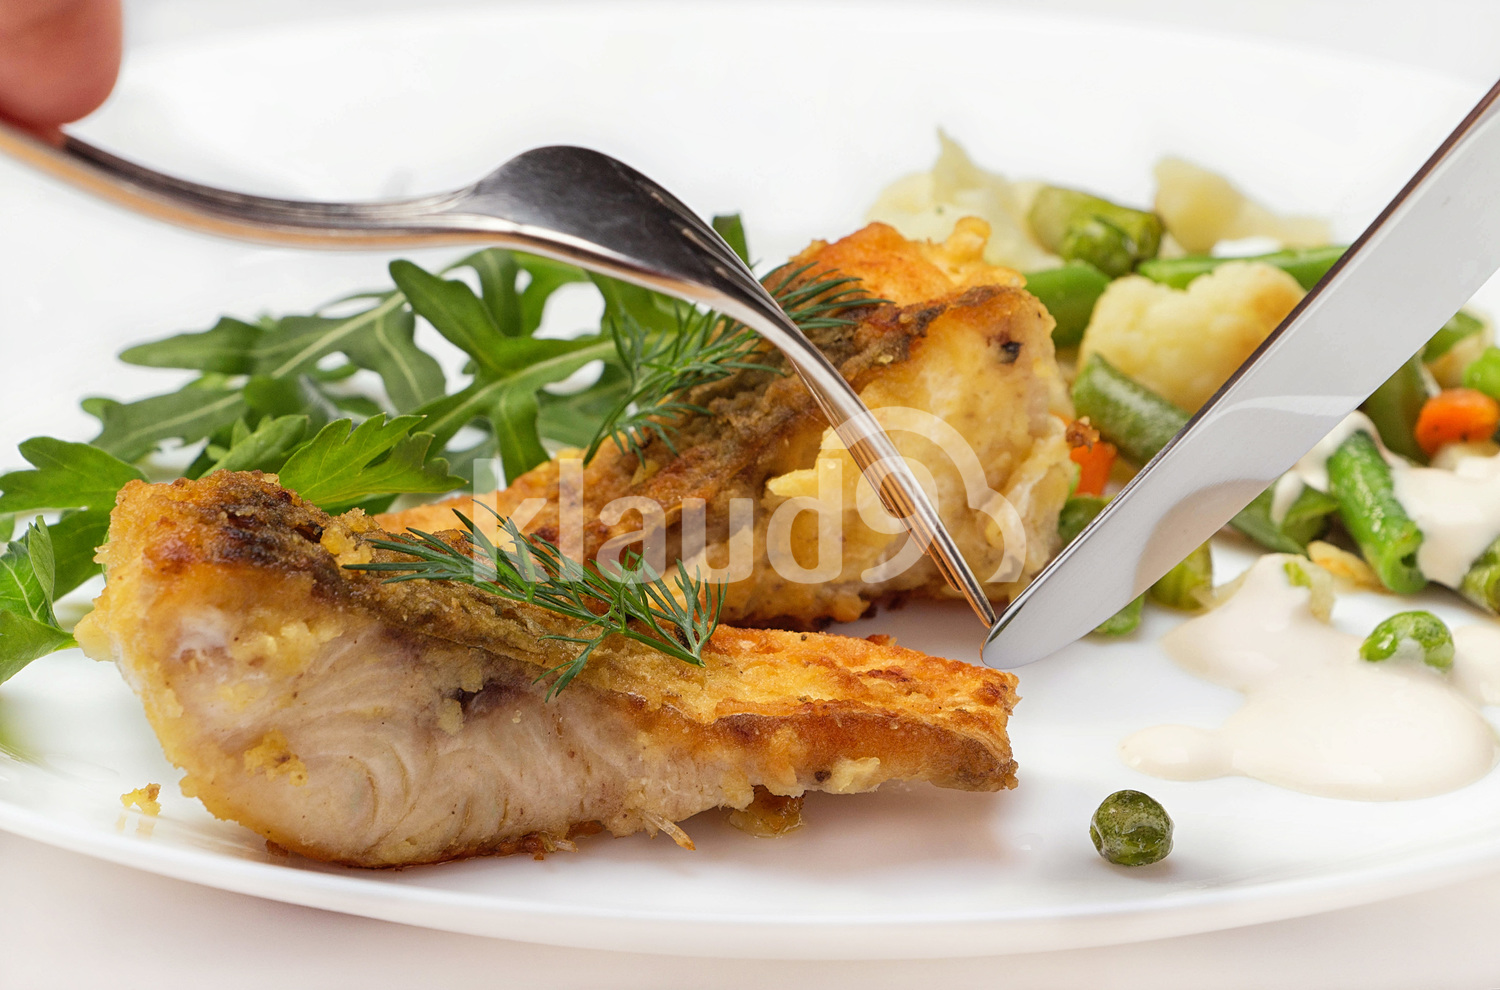 Slices of fried river fish with vegetables